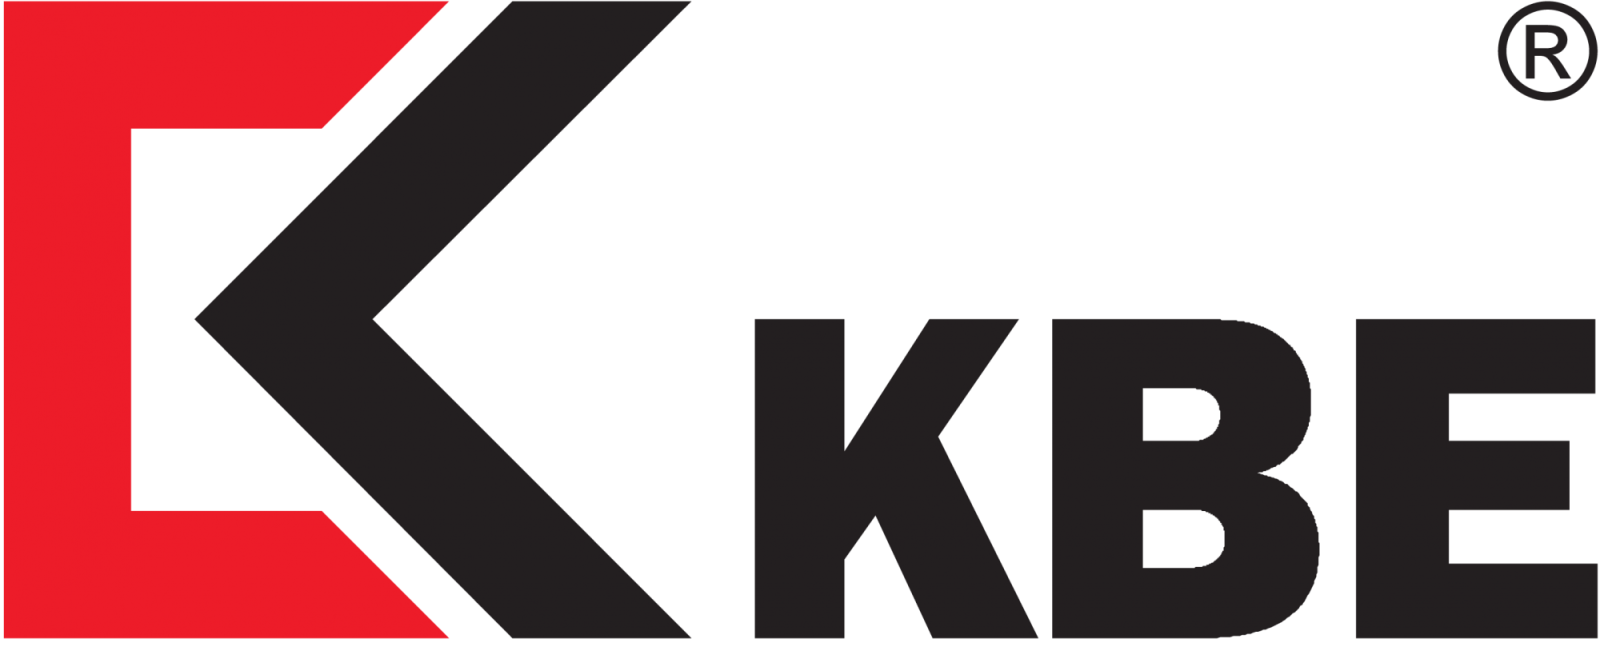 kbe-png-3_p2ucy6